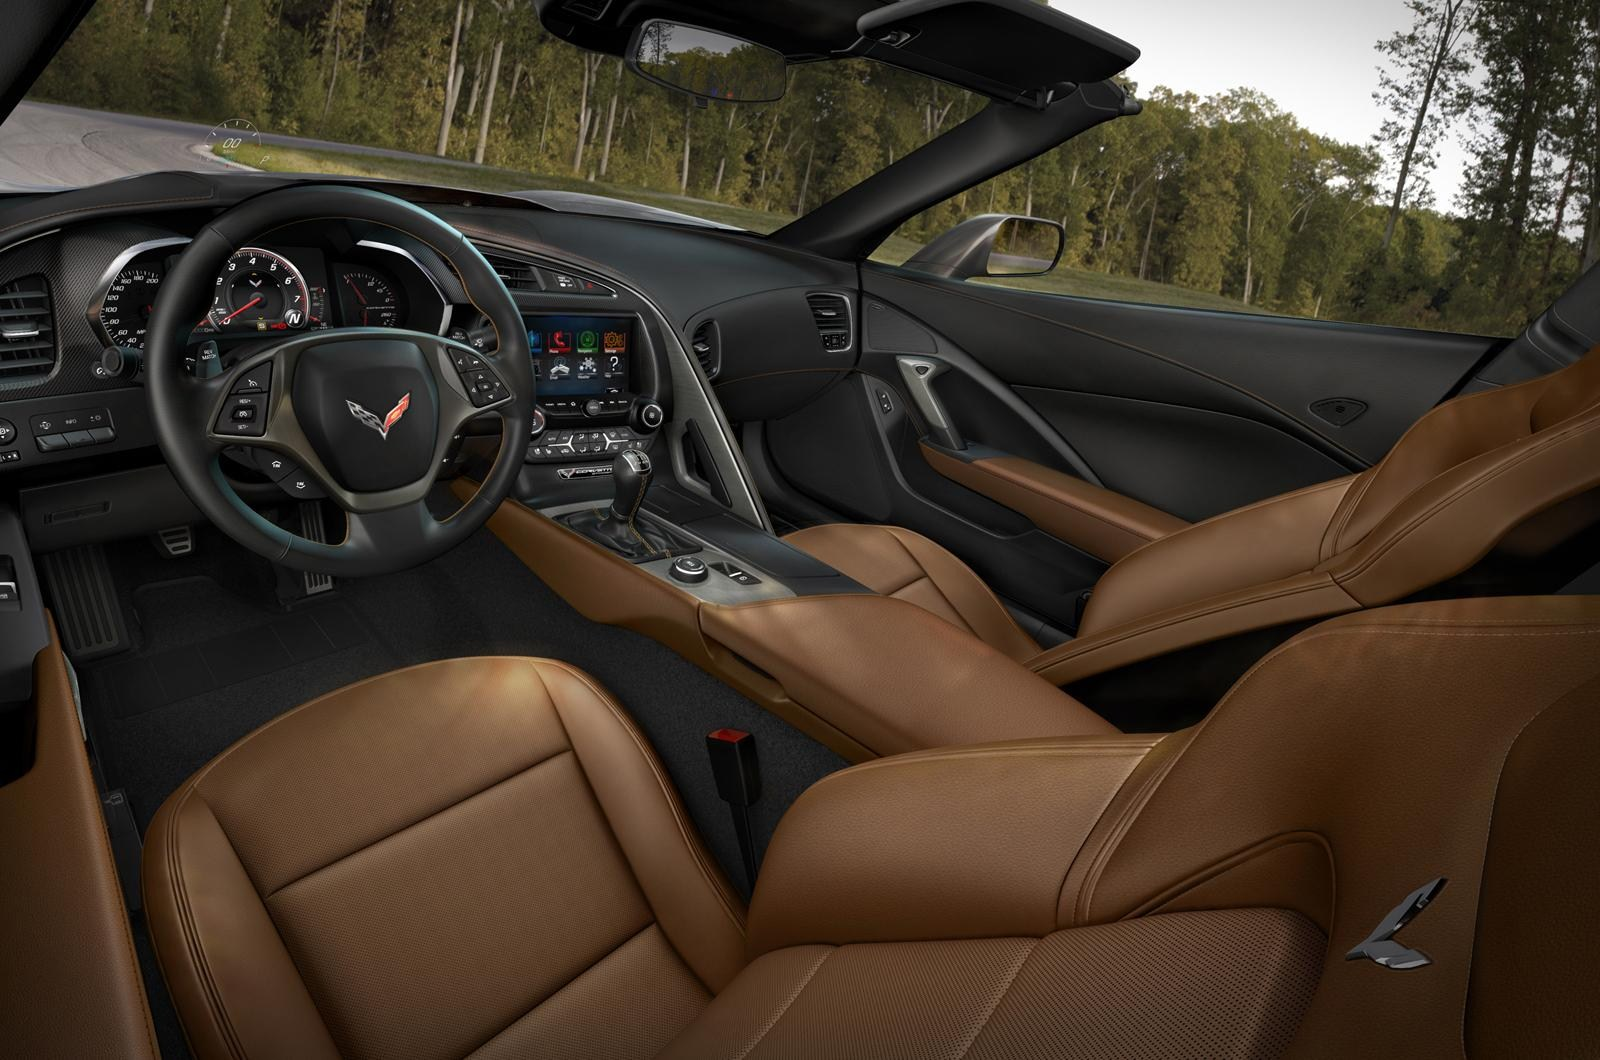 2015 Chevrolet Corvette Coupe Car Review